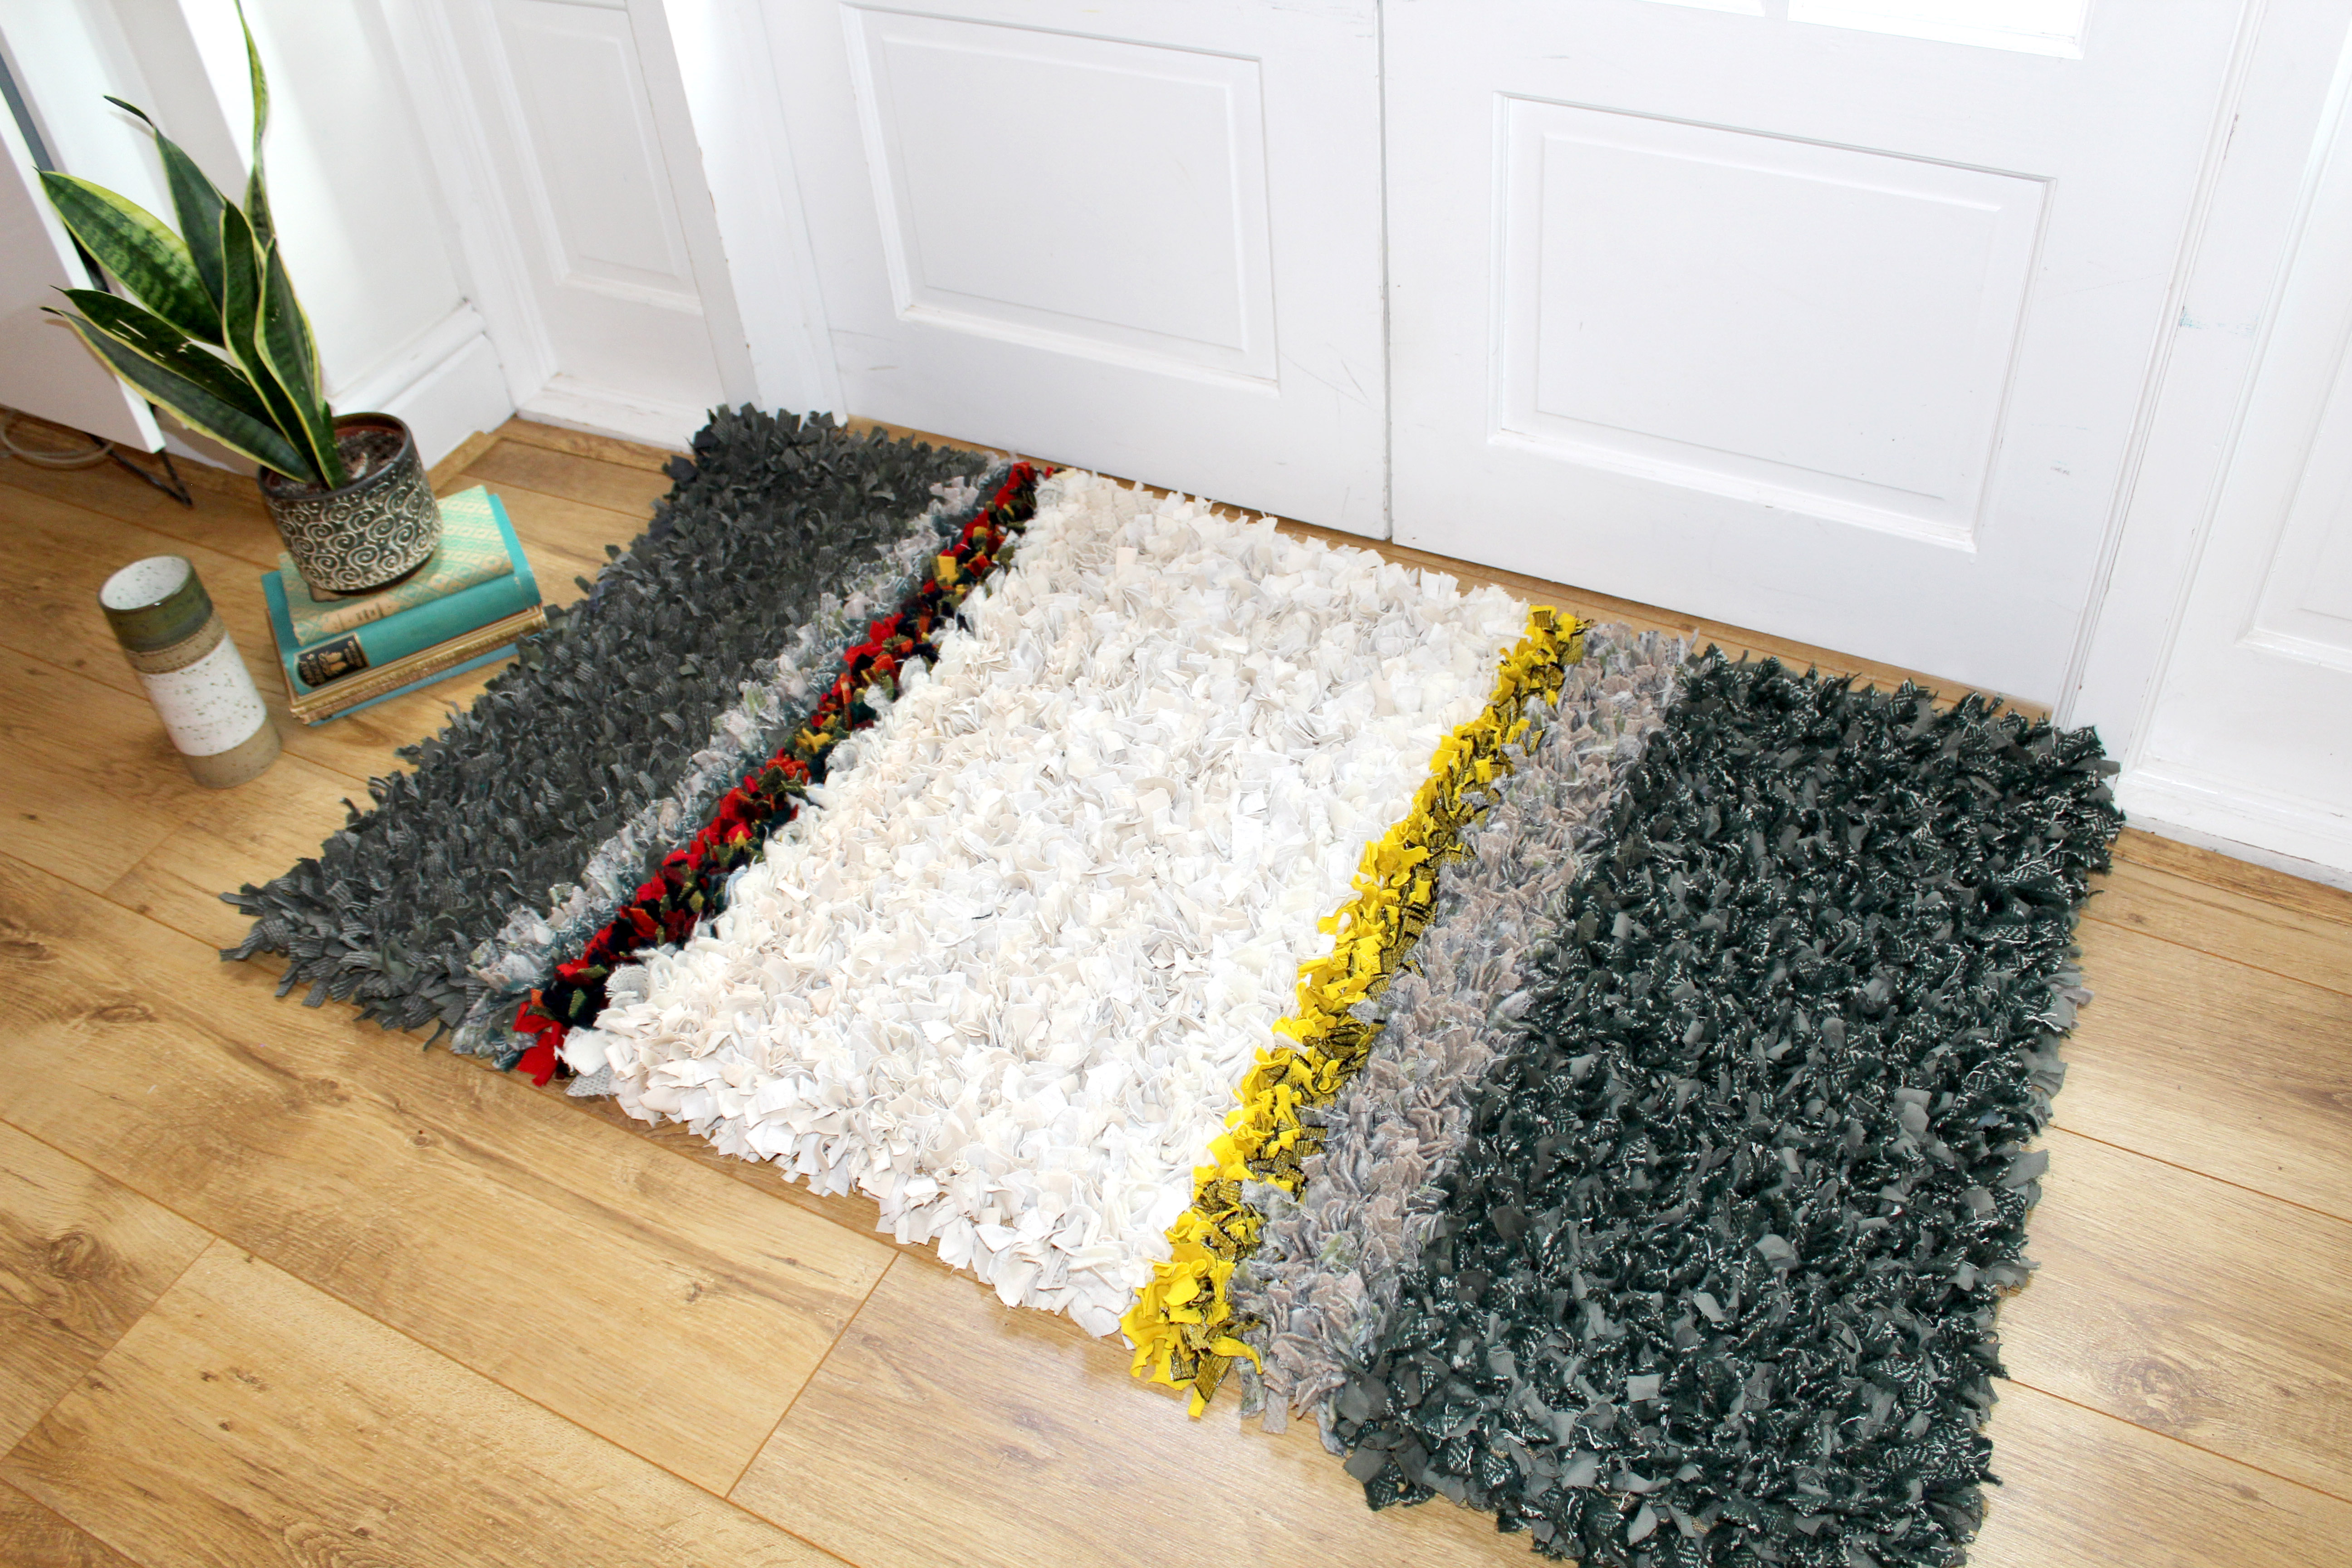 Ragged Life Rag rug on floor made using textile waste and clothing offcuts